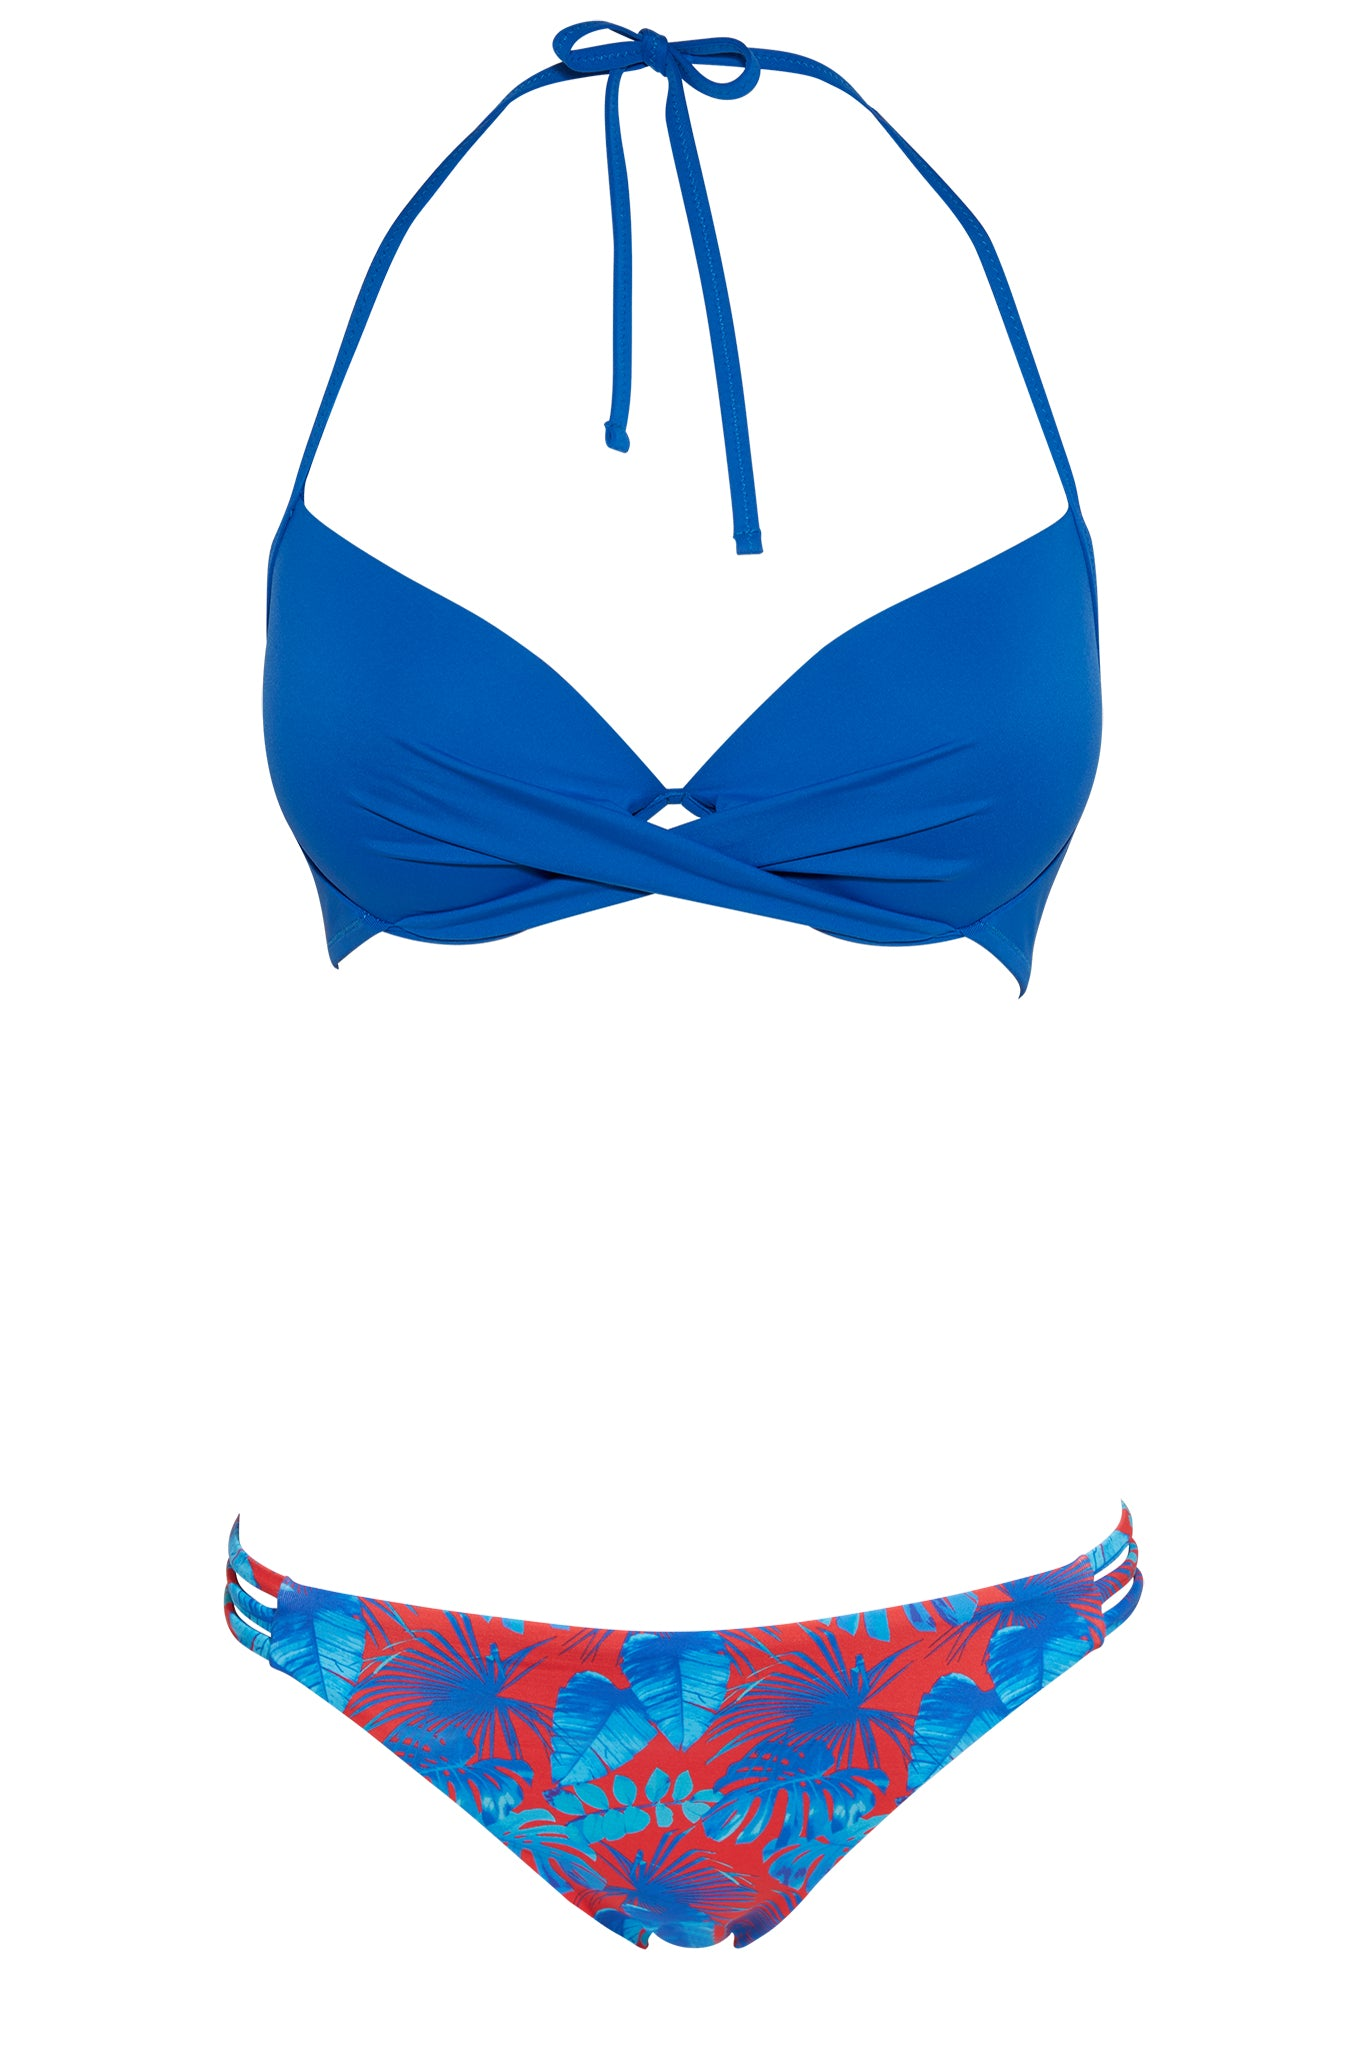 Set 29 Manu push up top bikini - royal blue and Tuscany 3-string bottom - exotic vibes swimwear bikini set